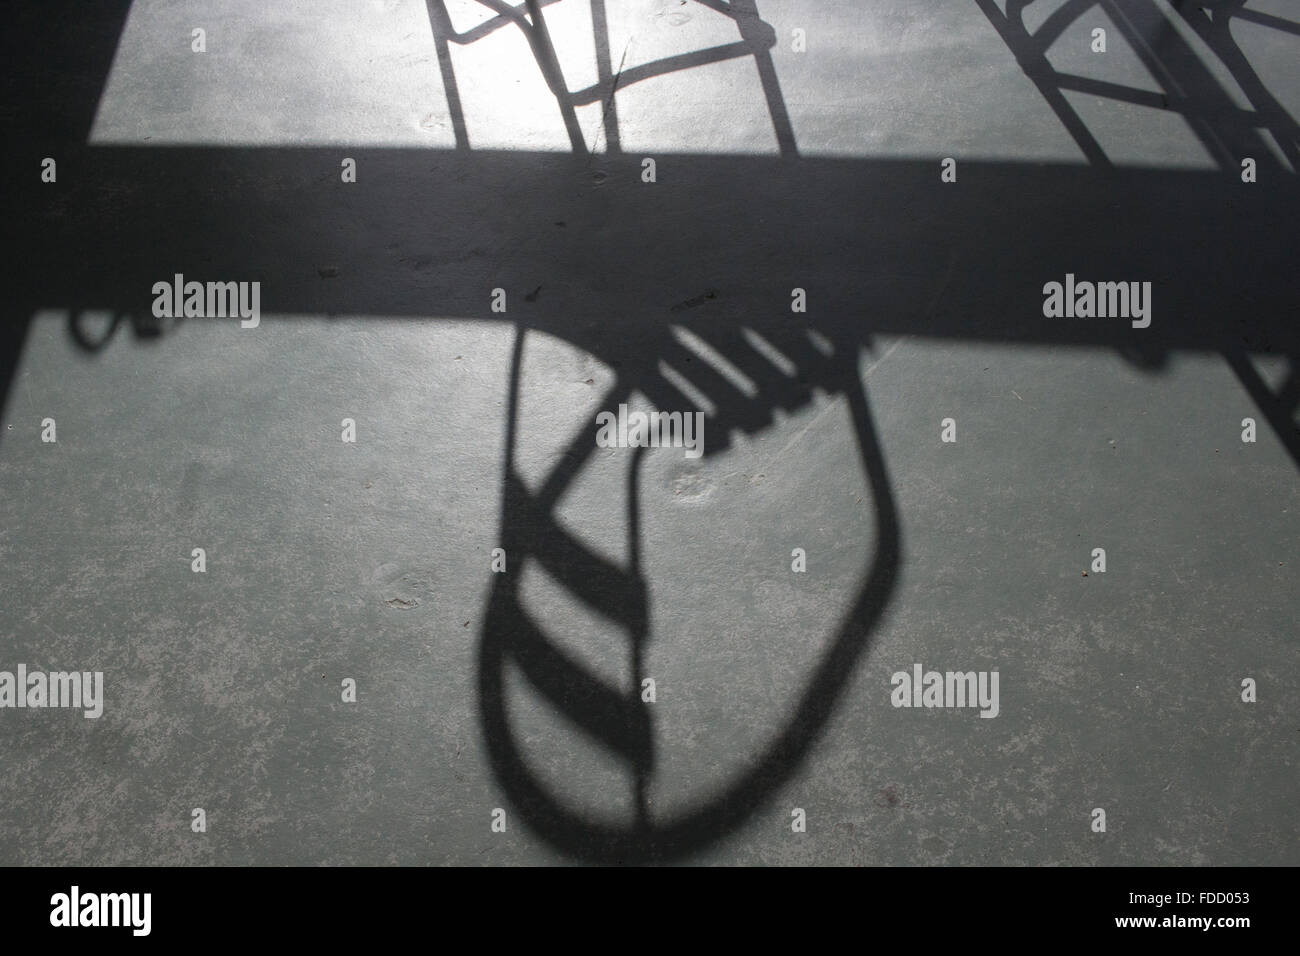 Chairs casting a shadow on a polished concrete floor Stock Photo